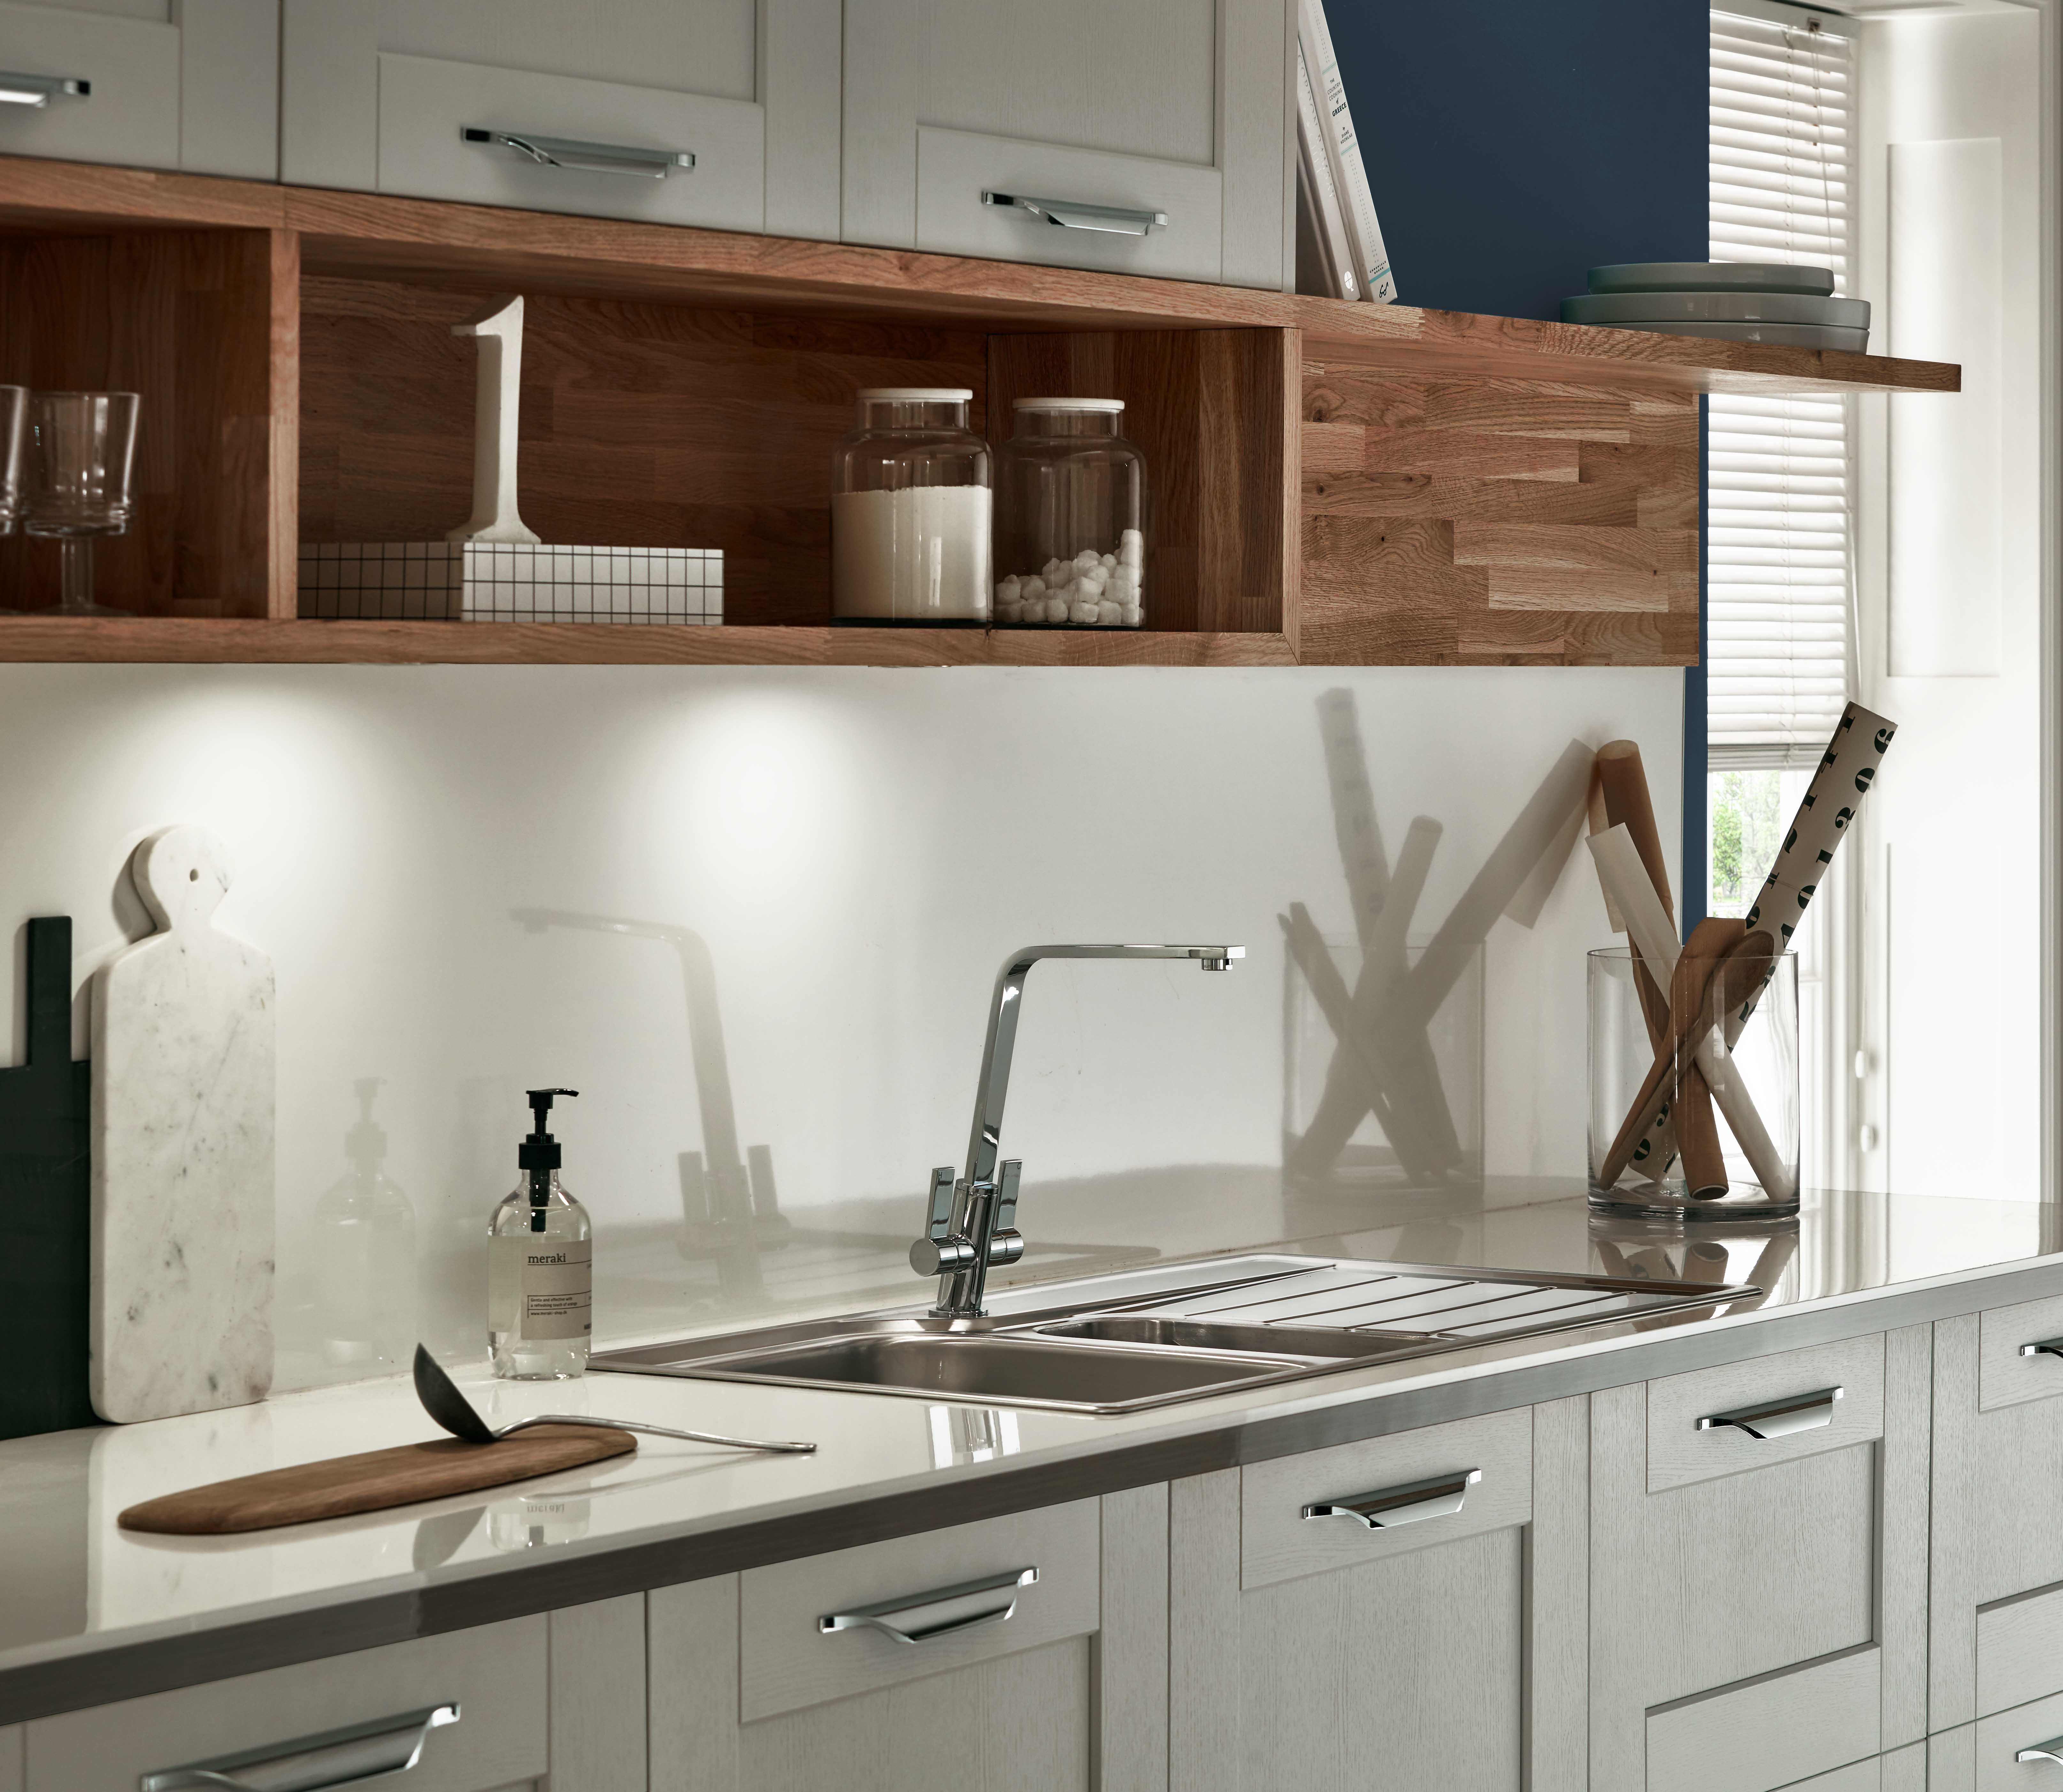 Home kitchen collection kitchen families glendevon family glendevon - Burford Grained Light Grey Kitchen From The Shaker Collection By Howdens Joinery